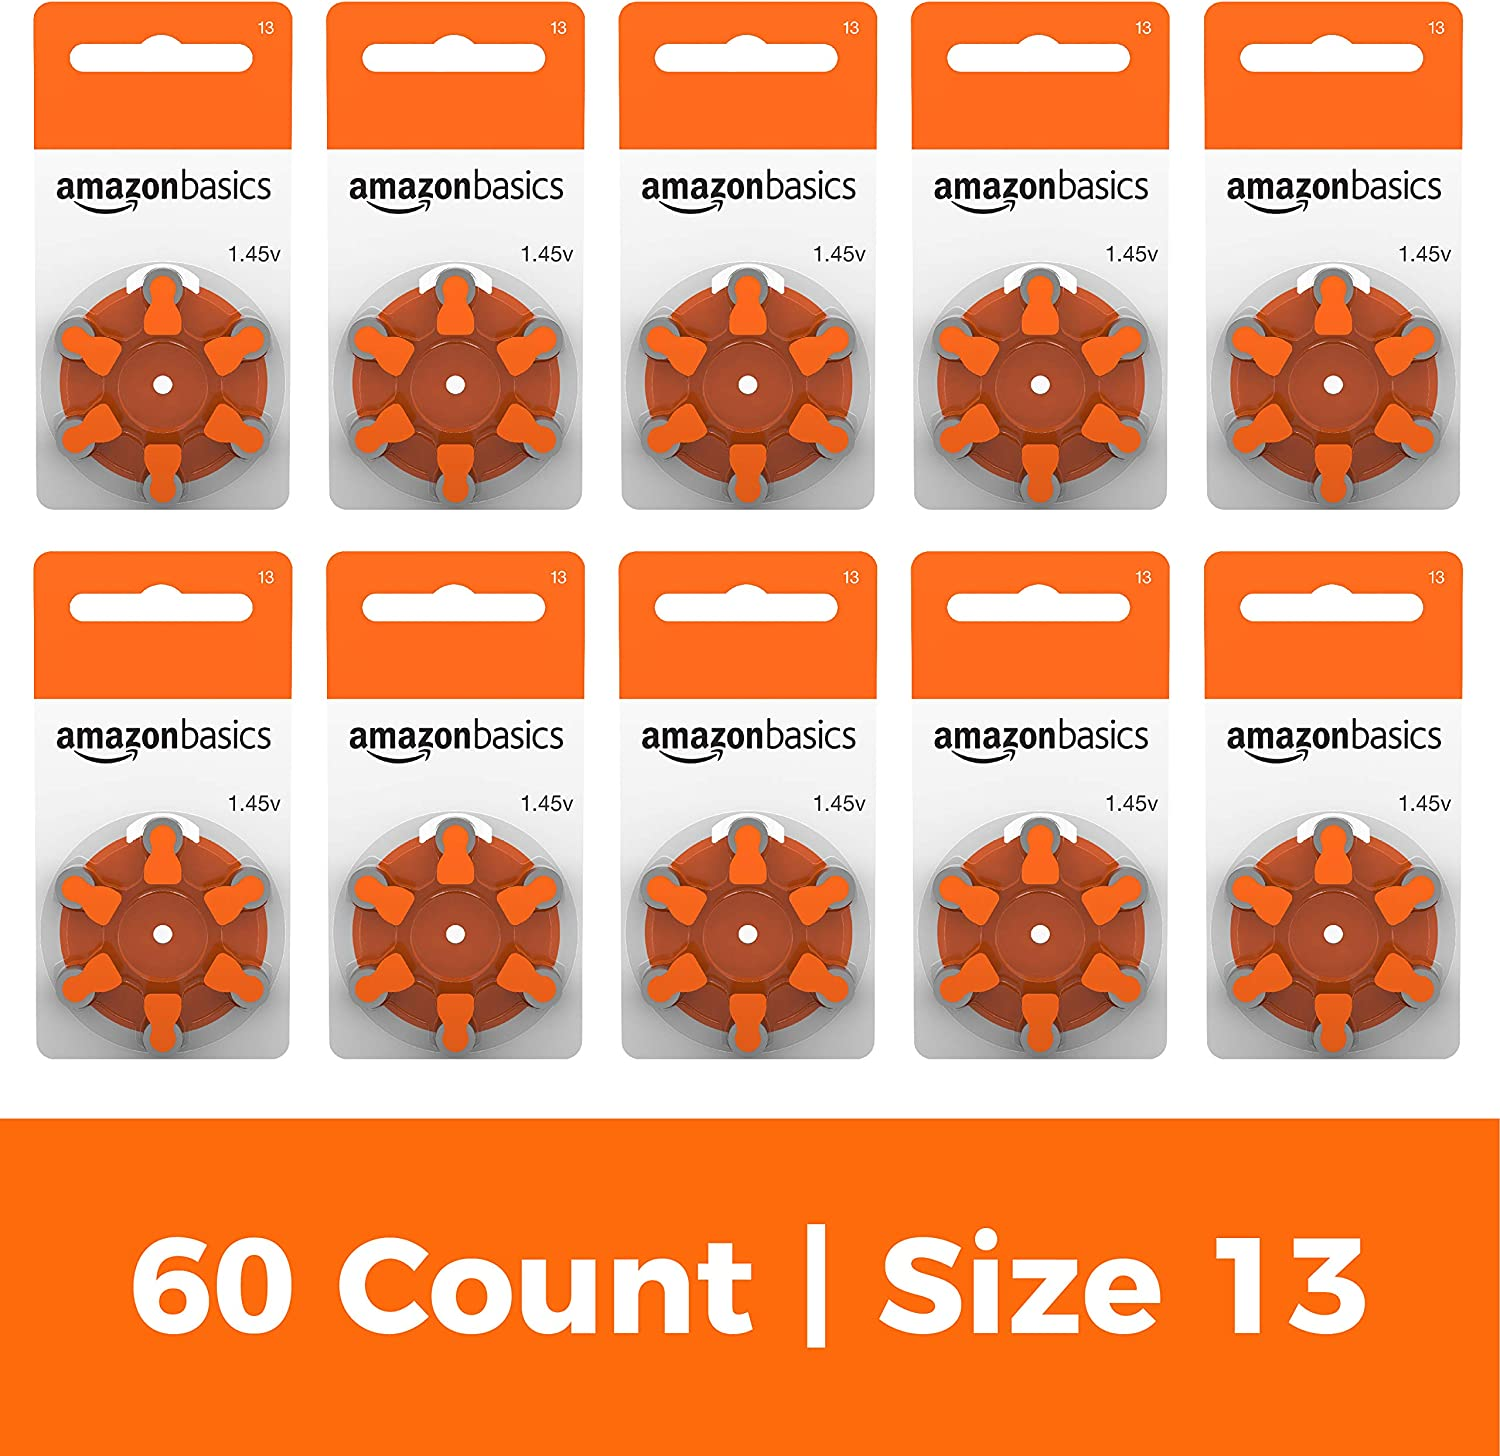 AmazonBasics 1.45 Volt Hearing Aid Batteries - Pack of 60, Size 13